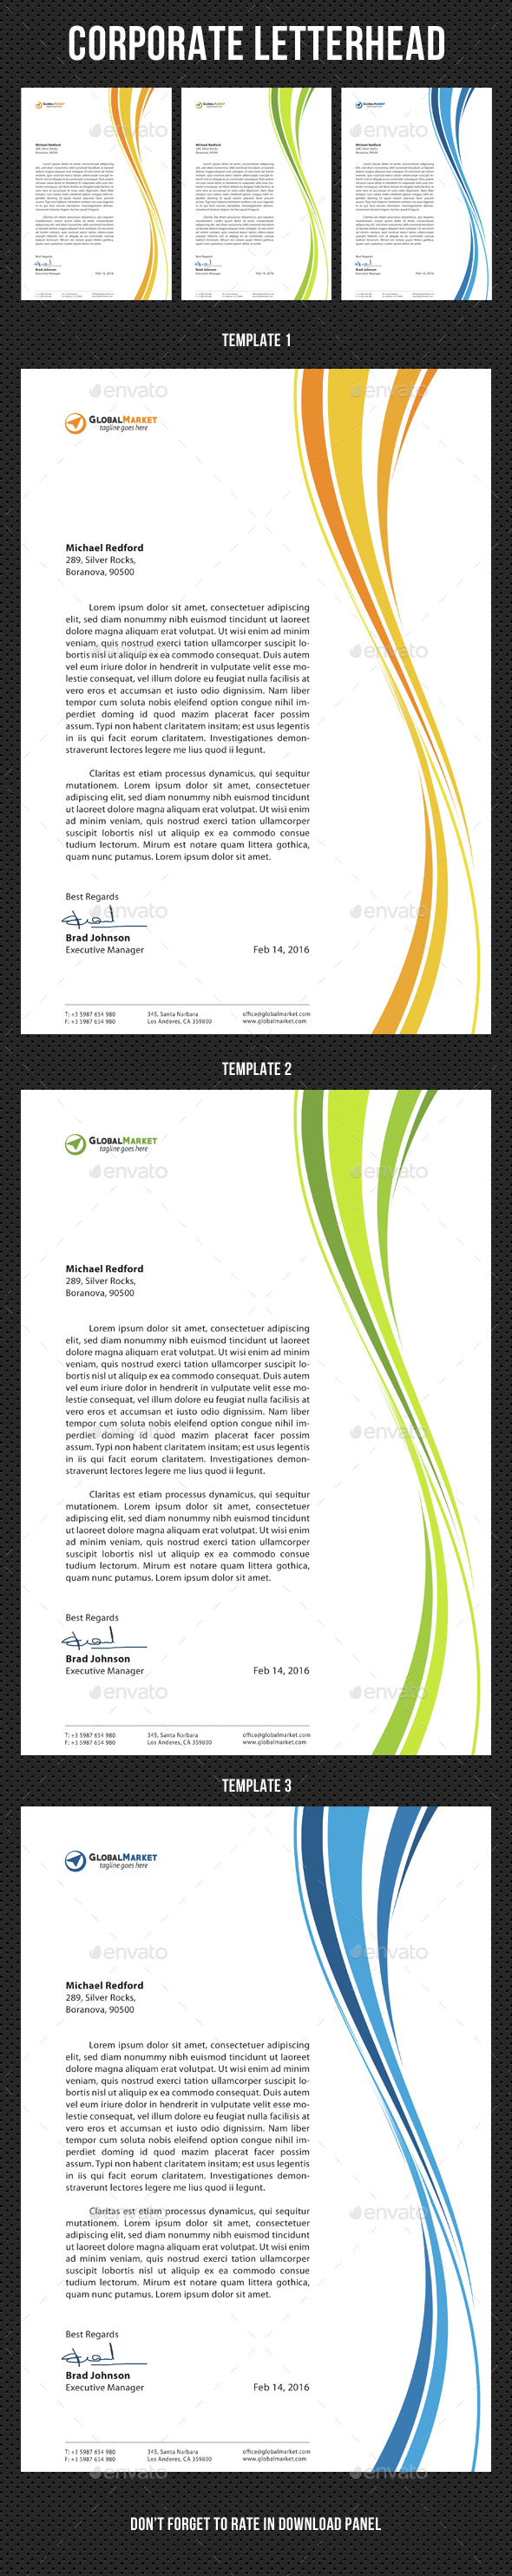 Corporate Letterhead v03 - Stationery Print Templates